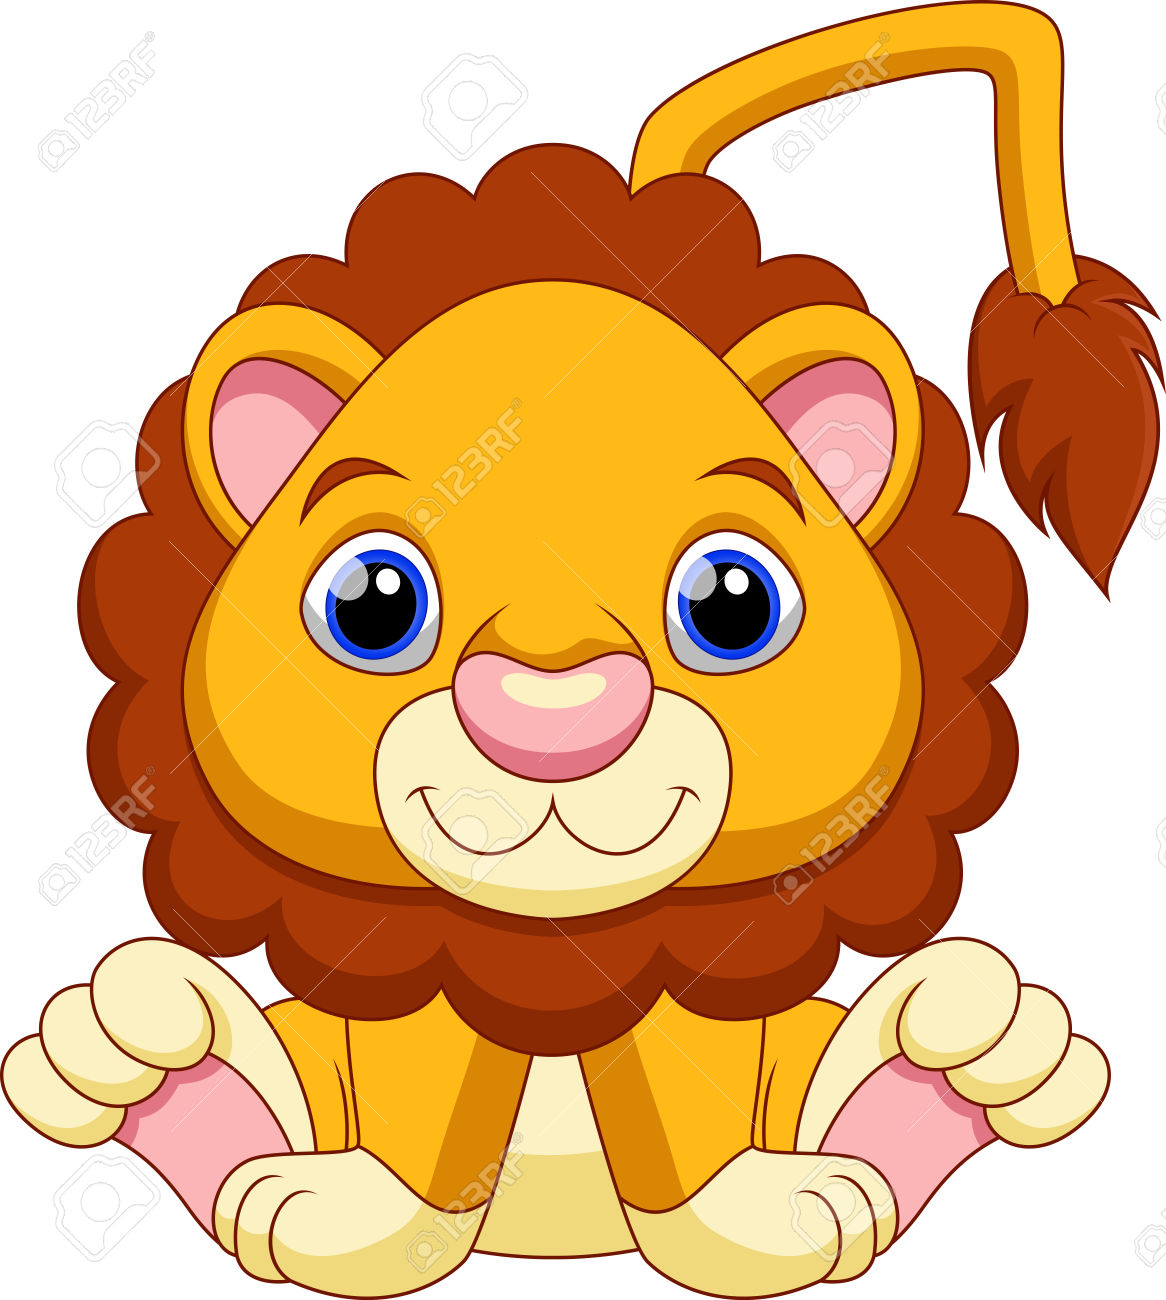 lion clipart at getdrawings com free for personal use lion clipart rh getdrawings com